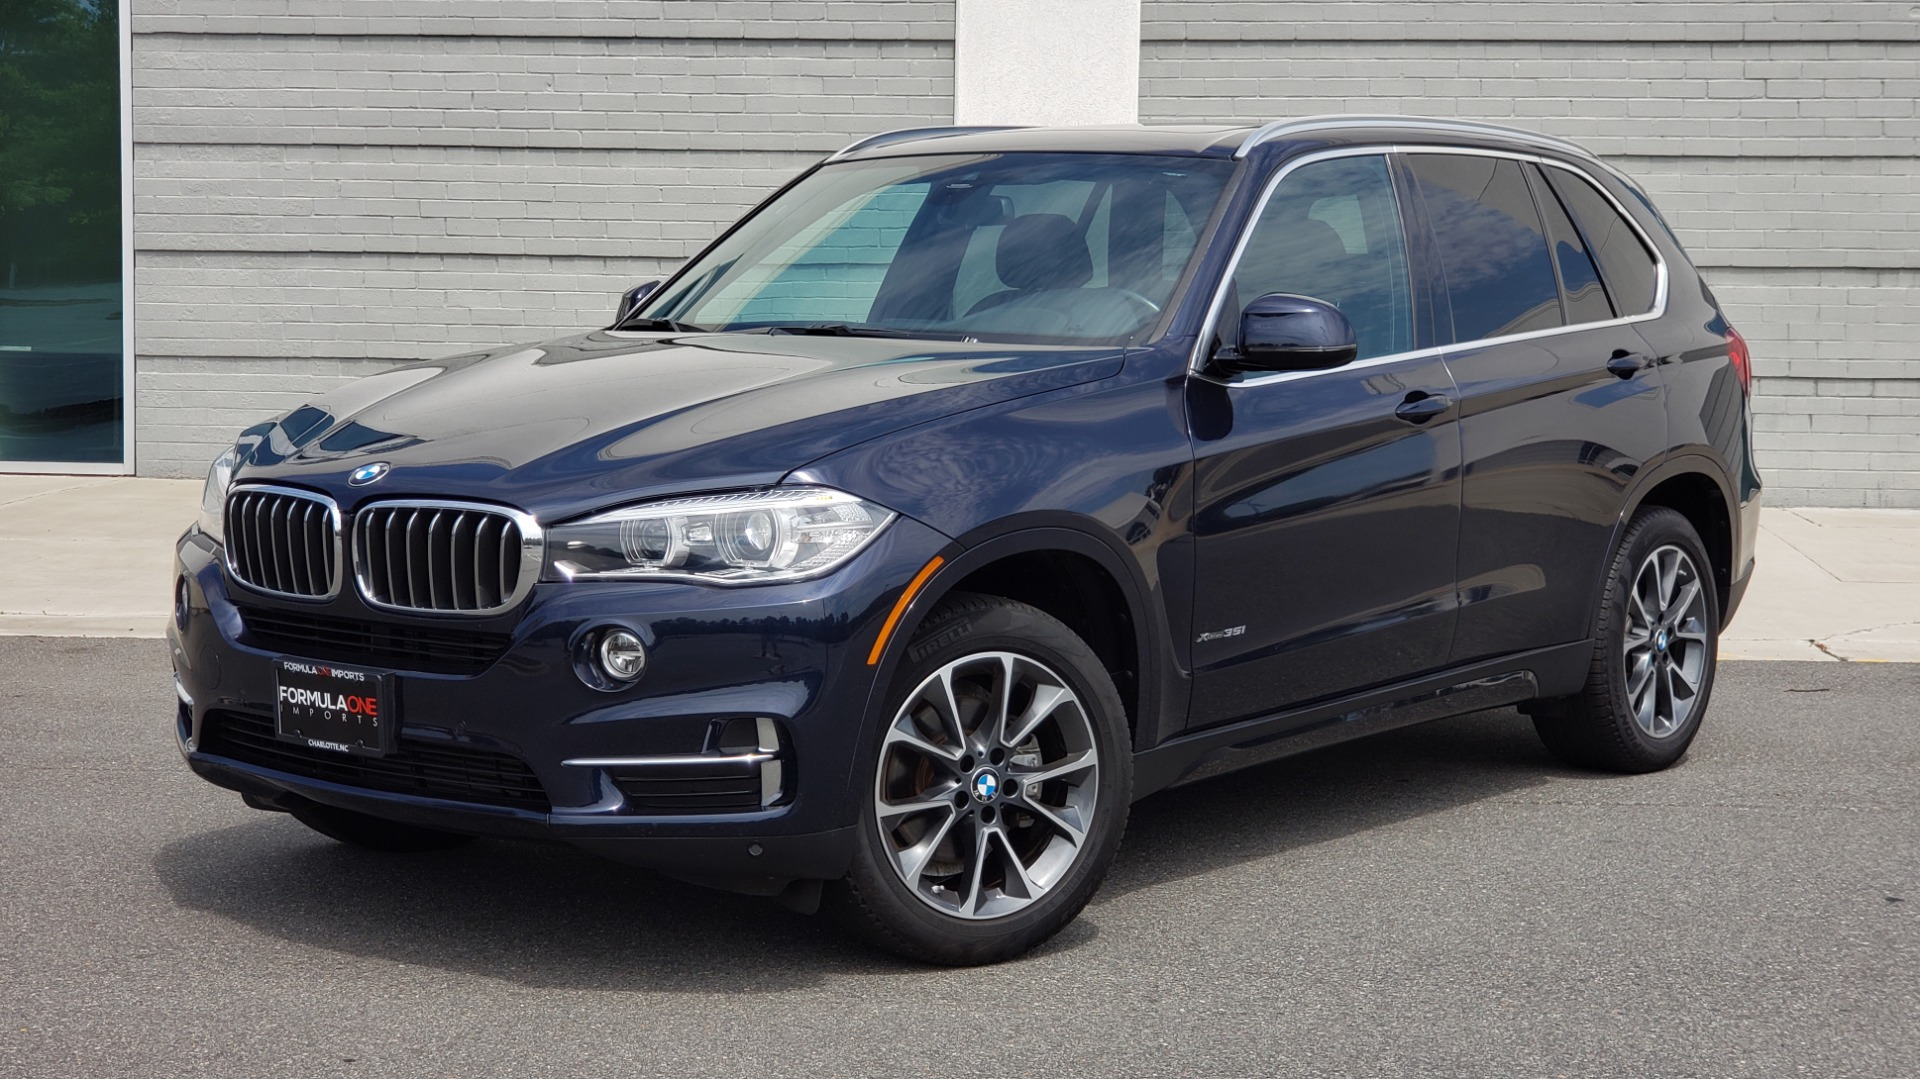 Used 2018 BMW X5 XDRIVE35I PREMIUM / LUXURY / DRVR ASST / HUD / LANE WARNING / REARVIEW for sale $43,695 at Formula Imports in Charlotte NC 28227 1